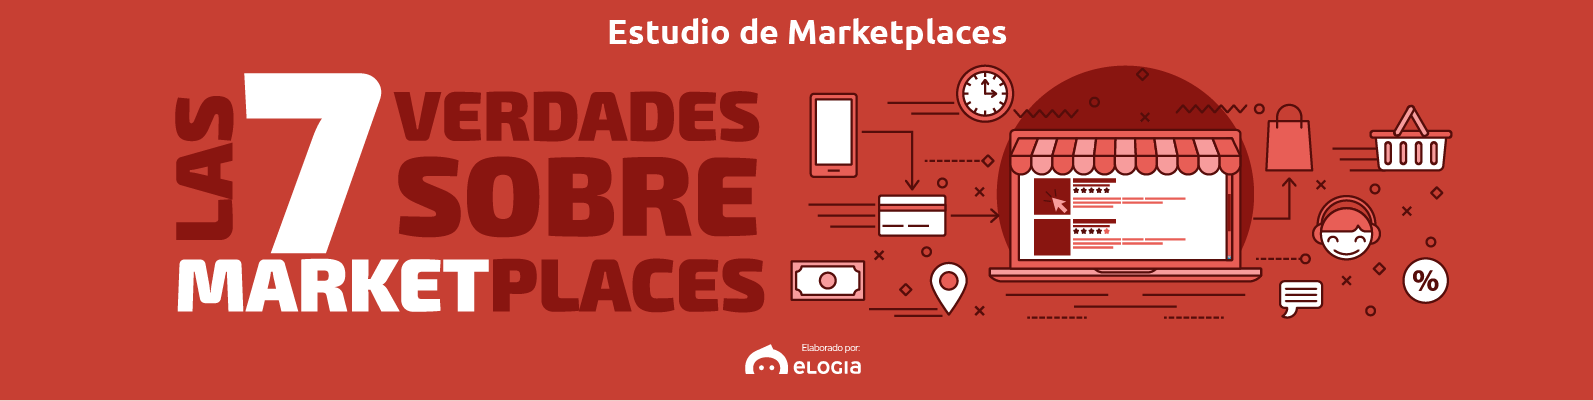 I Estudio Marketplaces : Las 7 verdades sobre los Marketplaces